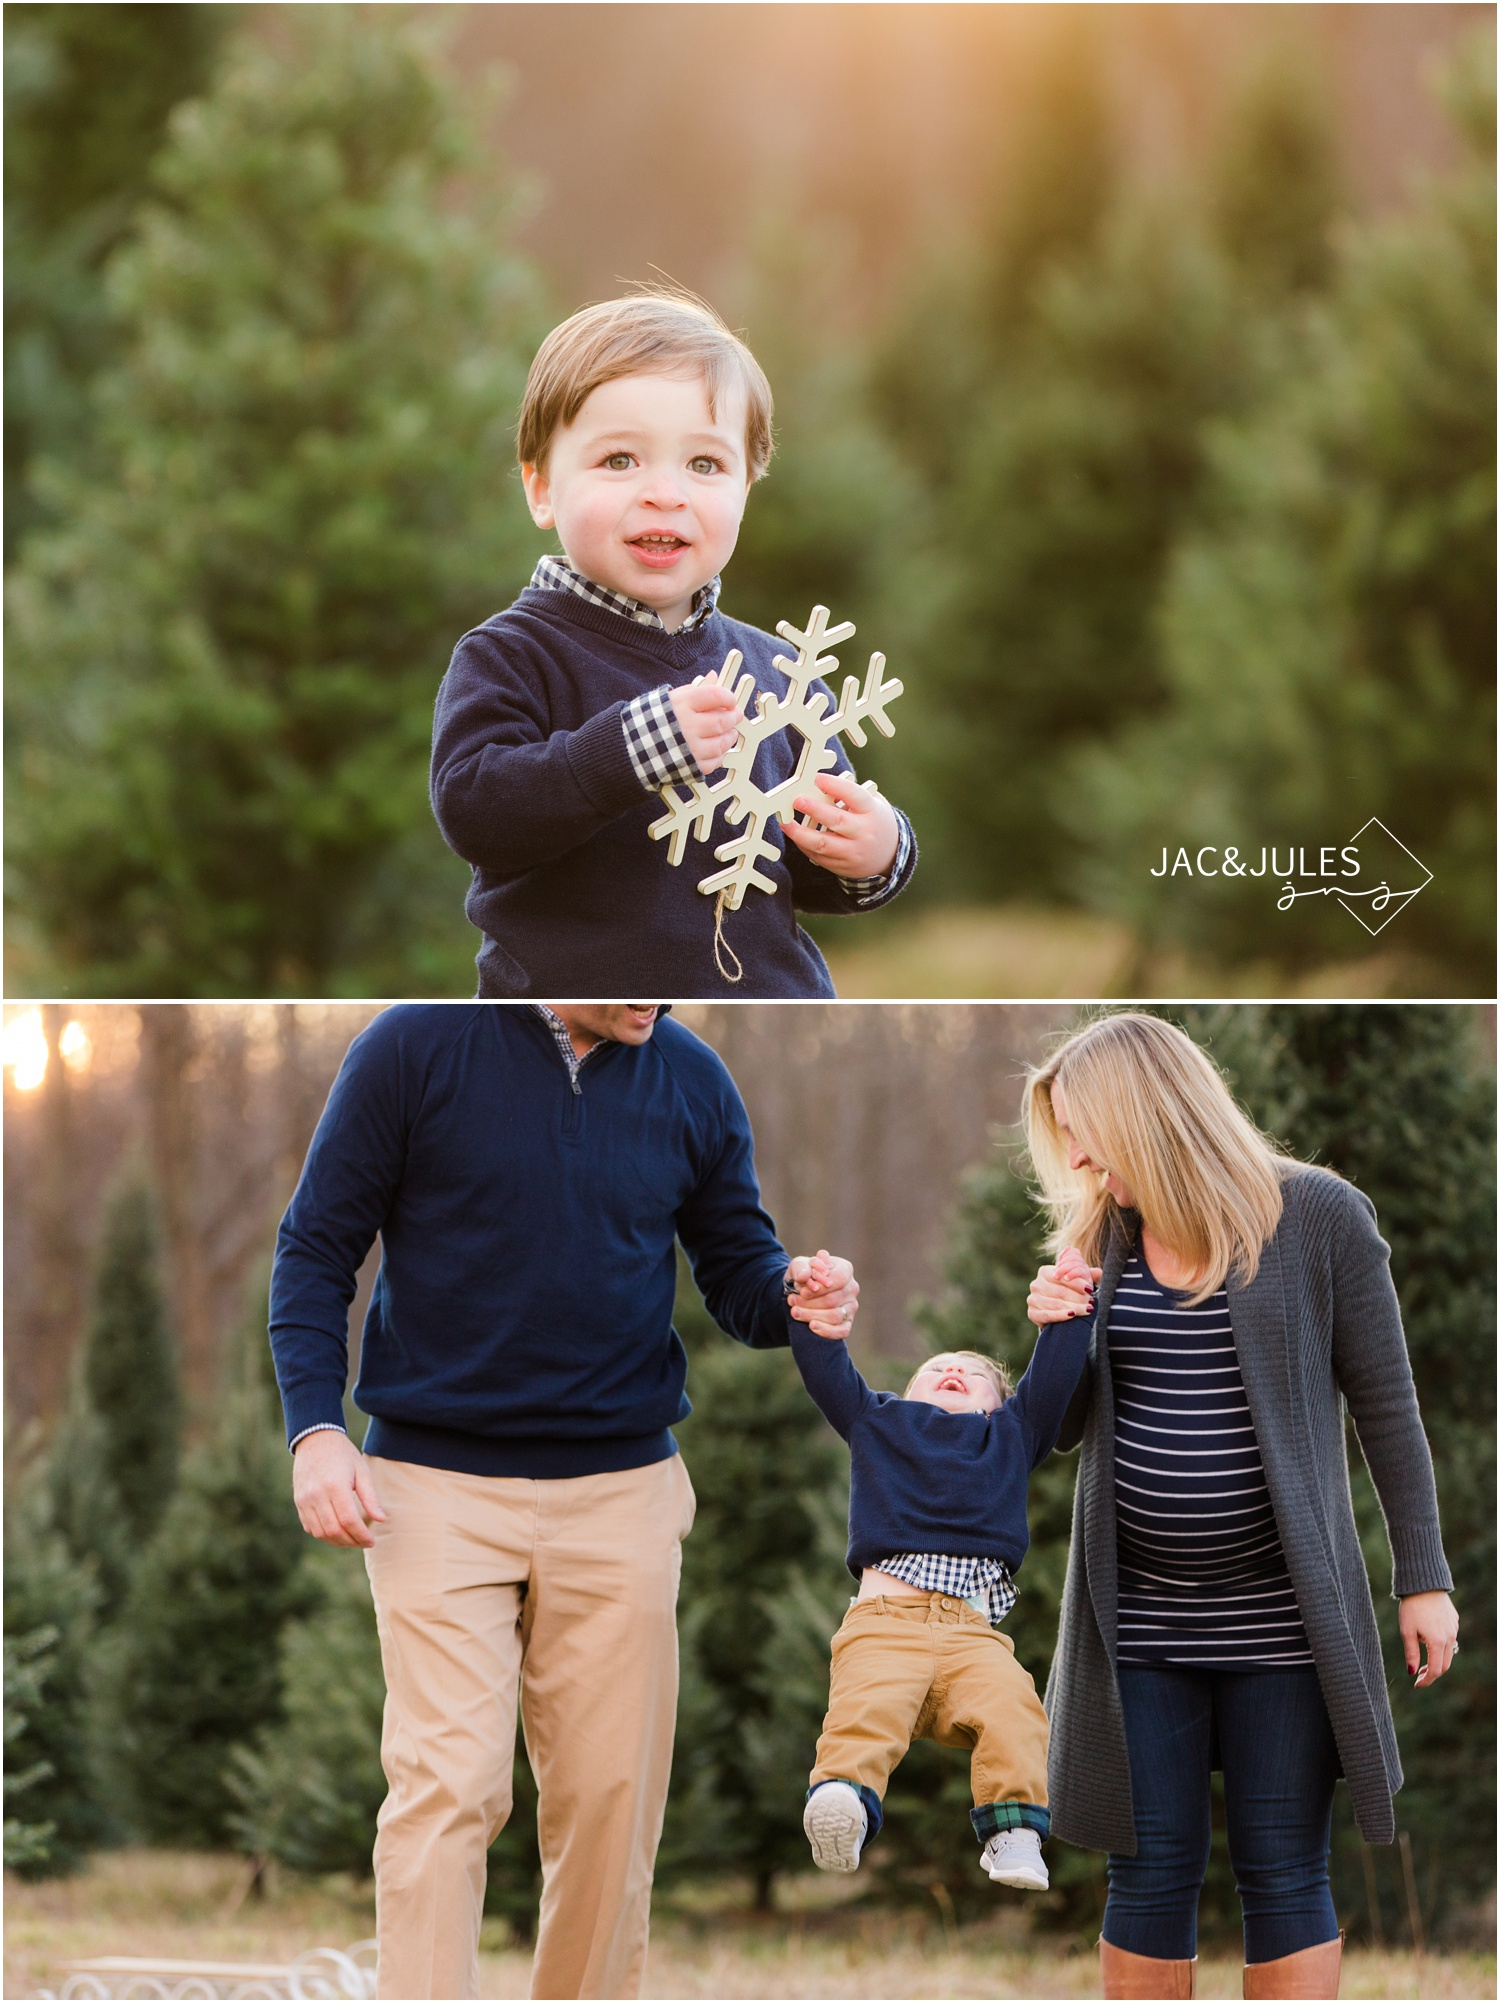 jacnjules photographs family for their christmas photos at Lone Silo Tree Farm in New Egypt NJ using natural light